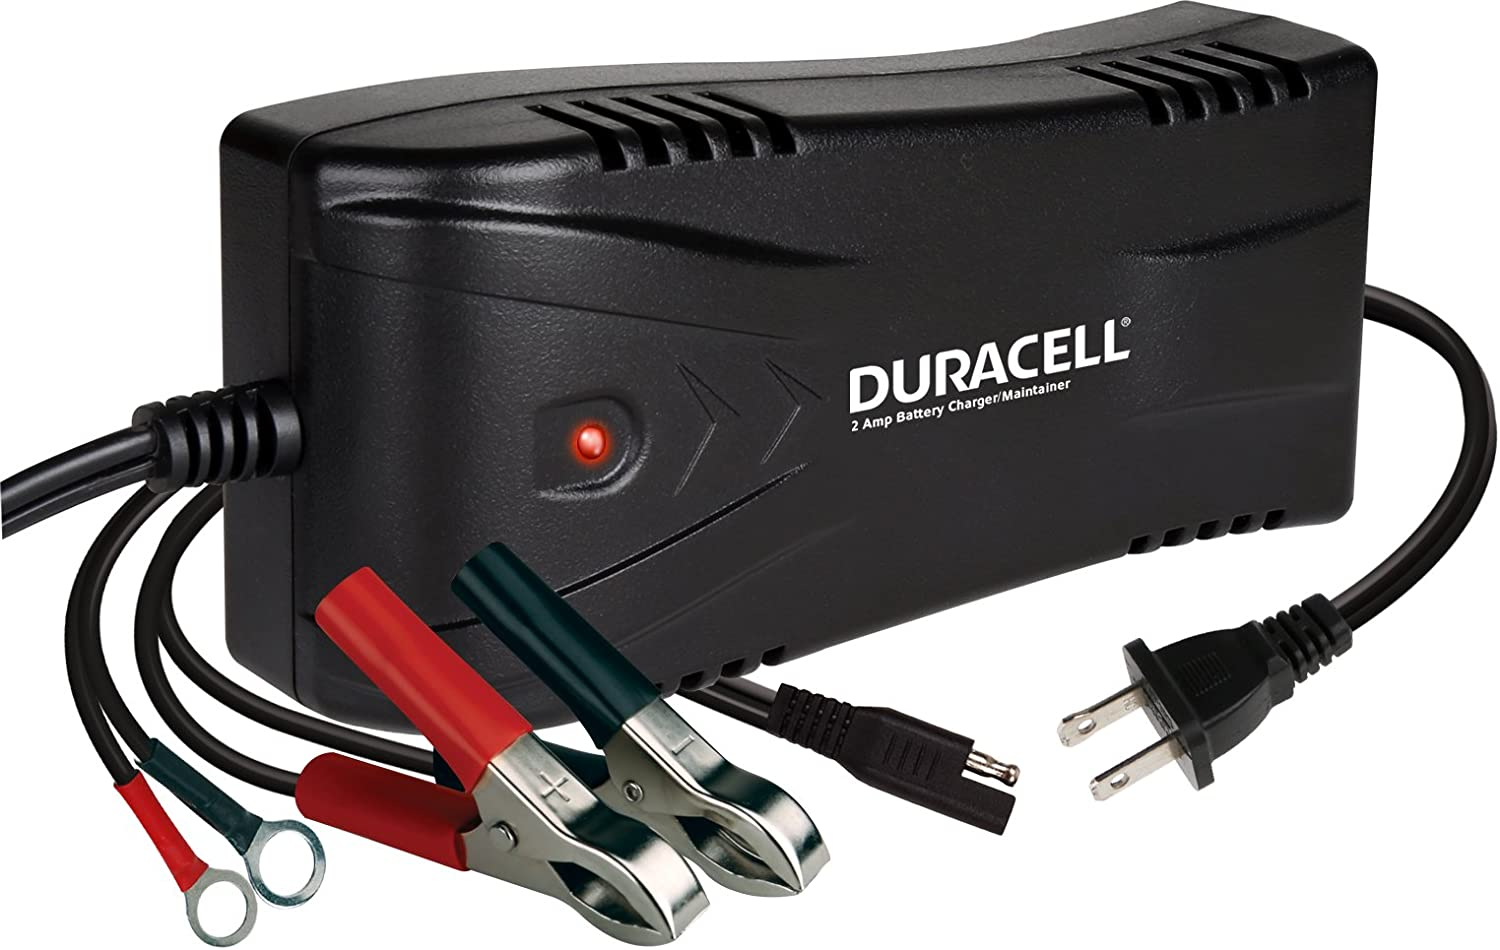 DURACELL DRBM2A 2 Amp Battery Charger Maintainer 3-Stage Float Charge Ideal for 12 Volt 12V Lead Acid SLA batteries for Cars, Motorcycles, Marine Sports Watercrafts and more